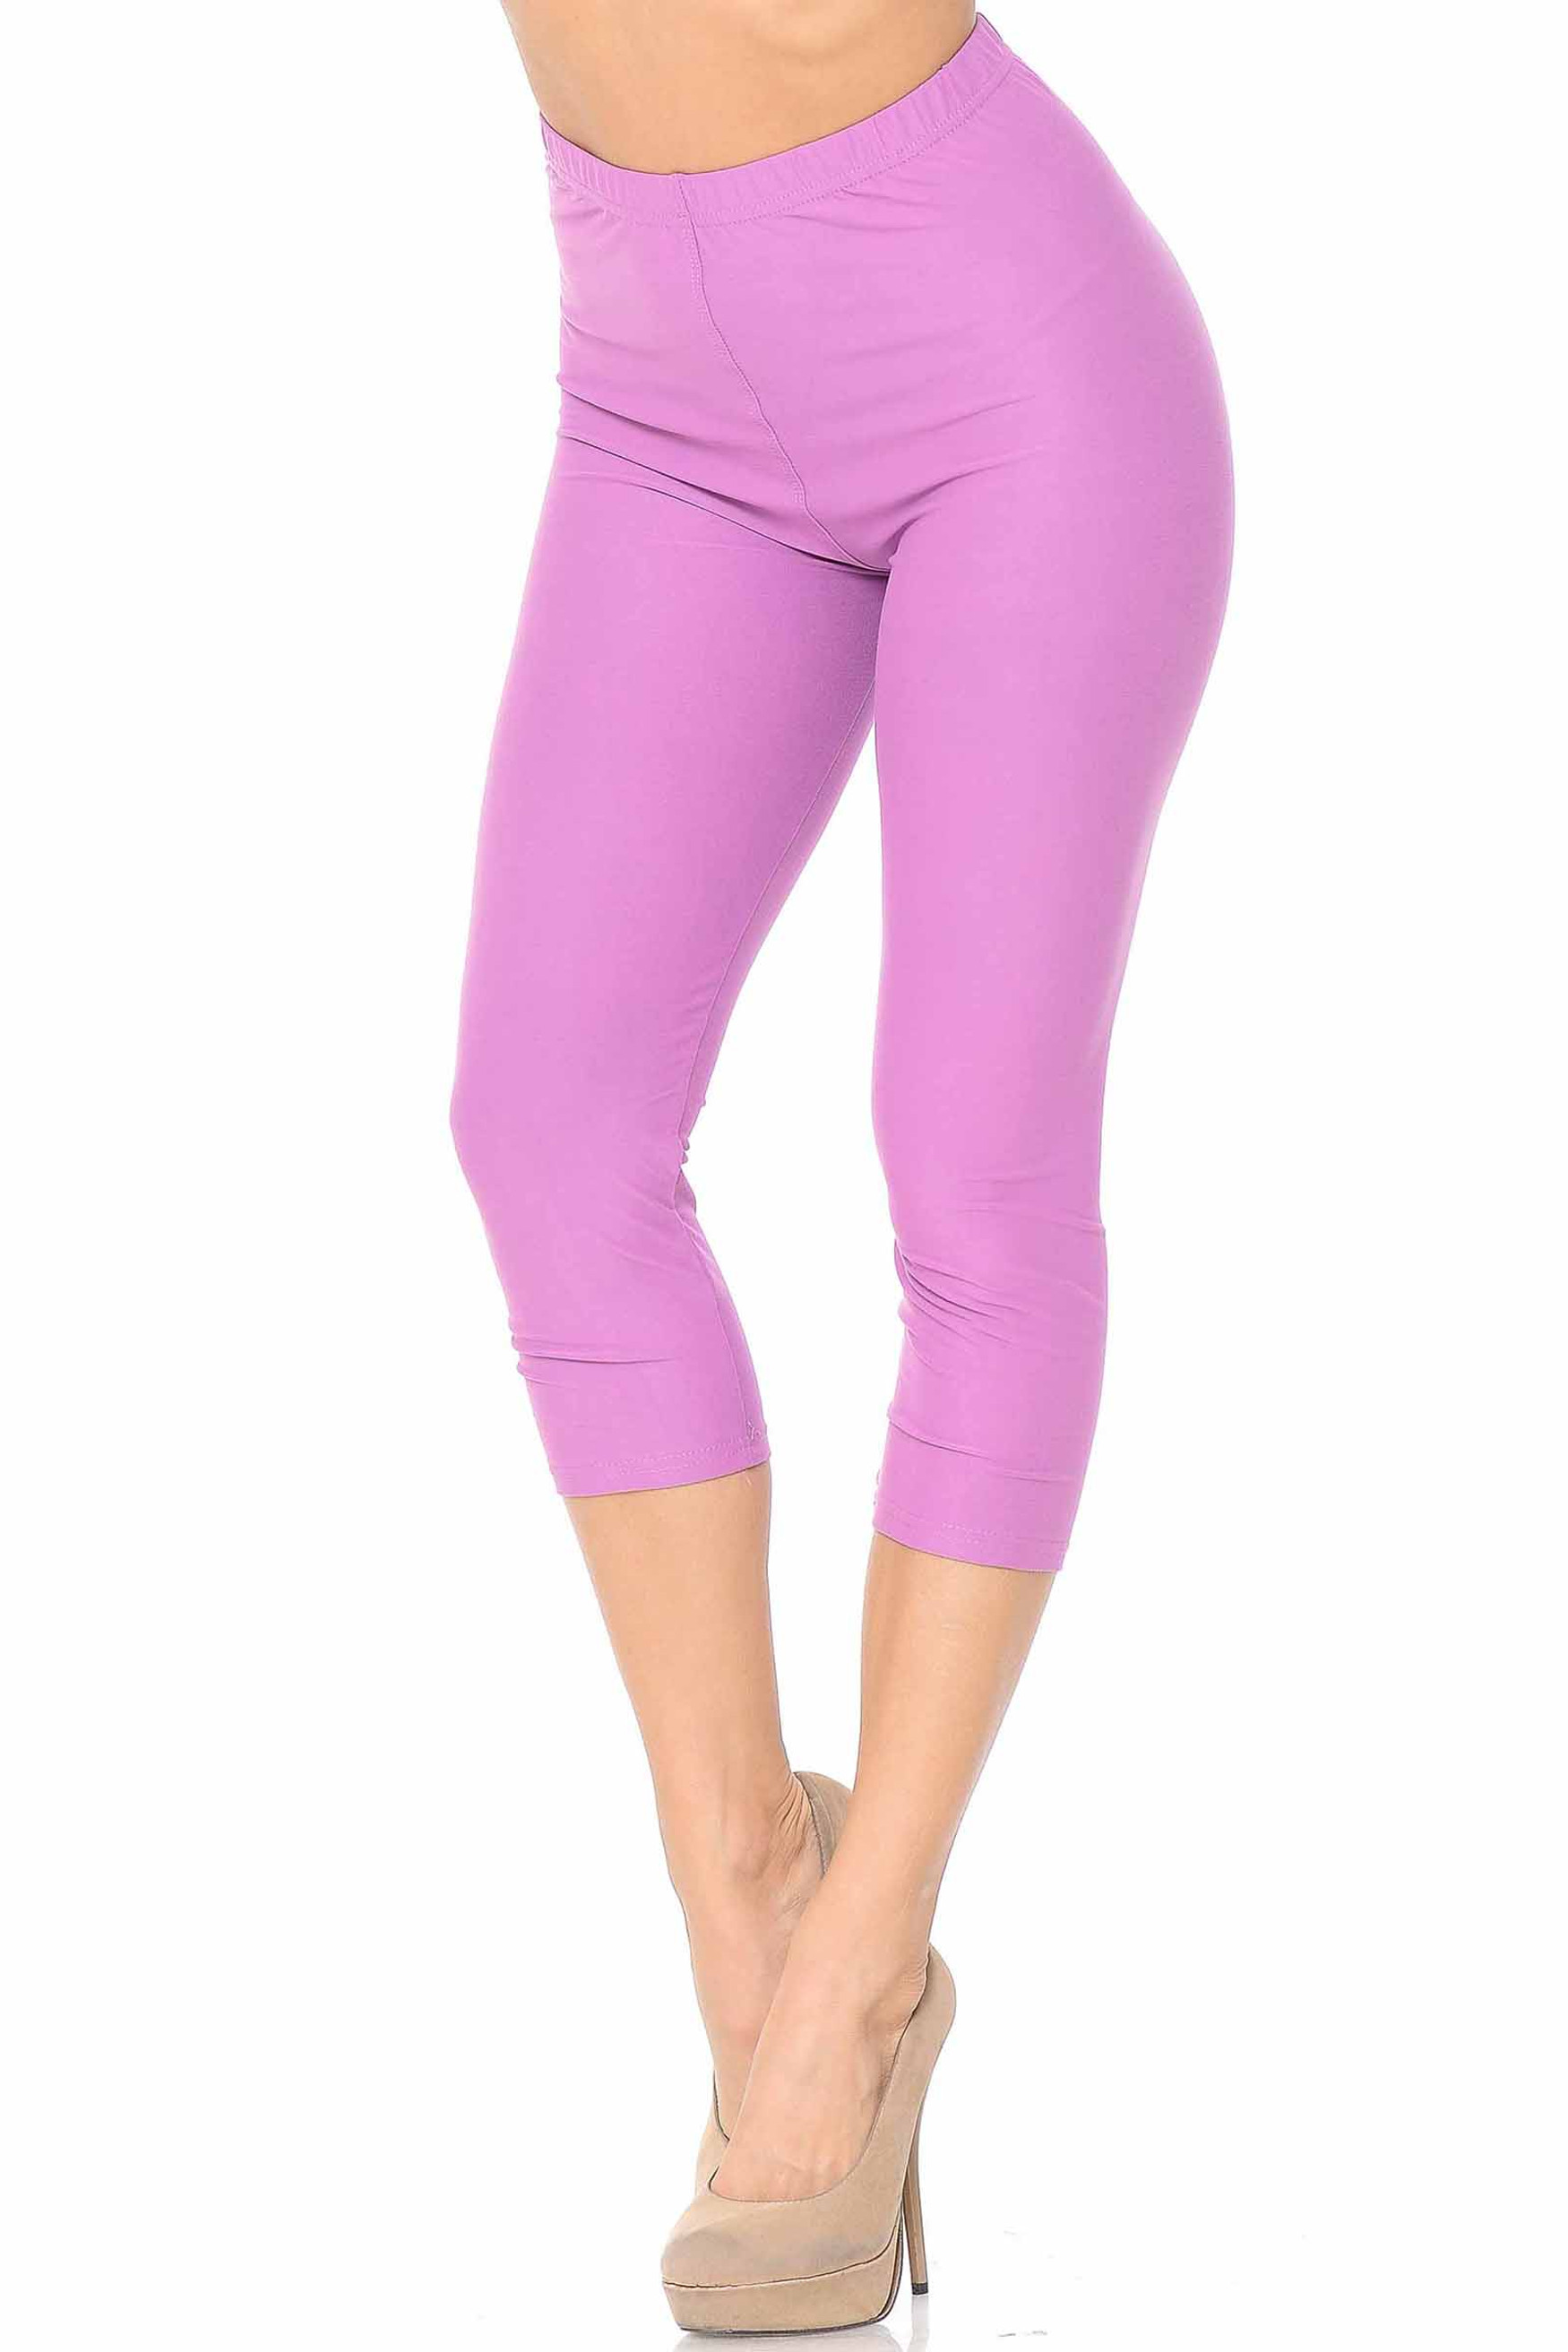 Buttery Soft Basic Solid Capris - New Mix